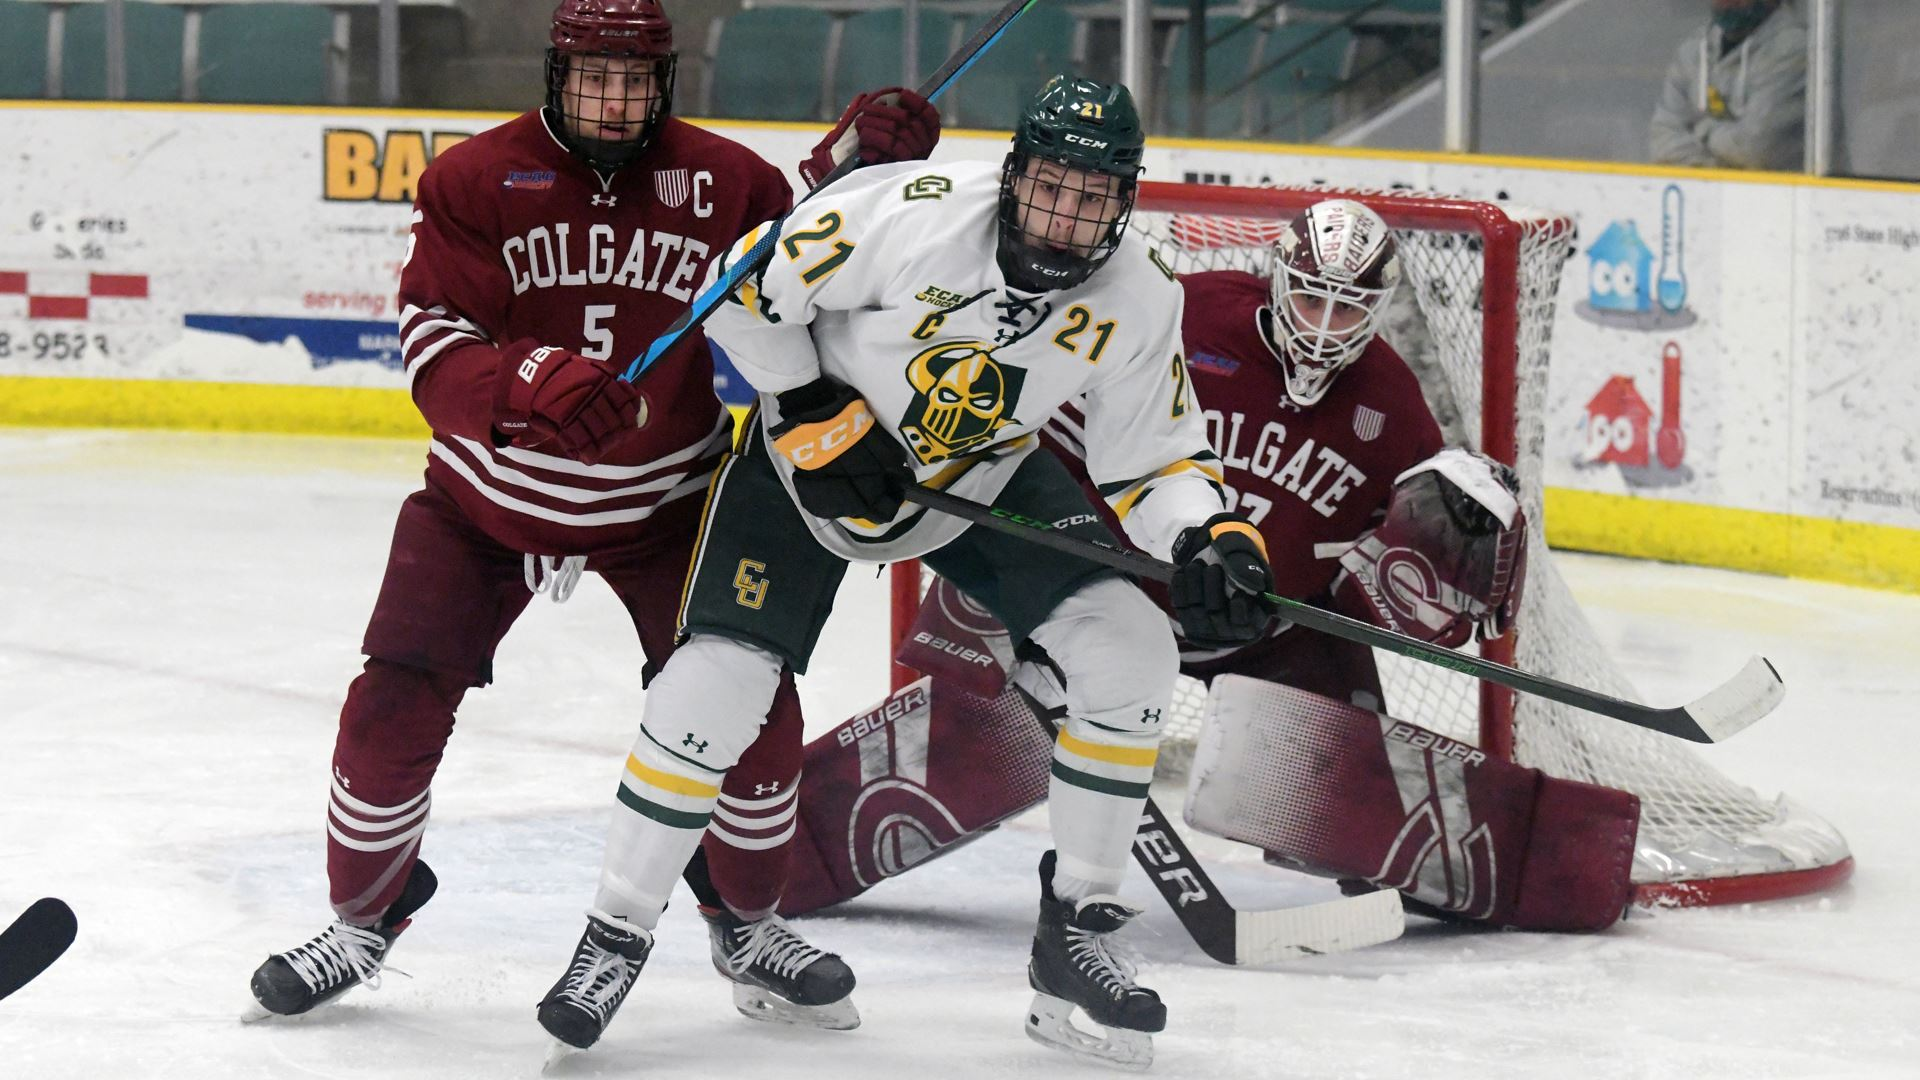 Rankings roundup: How the top 20 NCAA hockey teams fared, Feb. 22-28